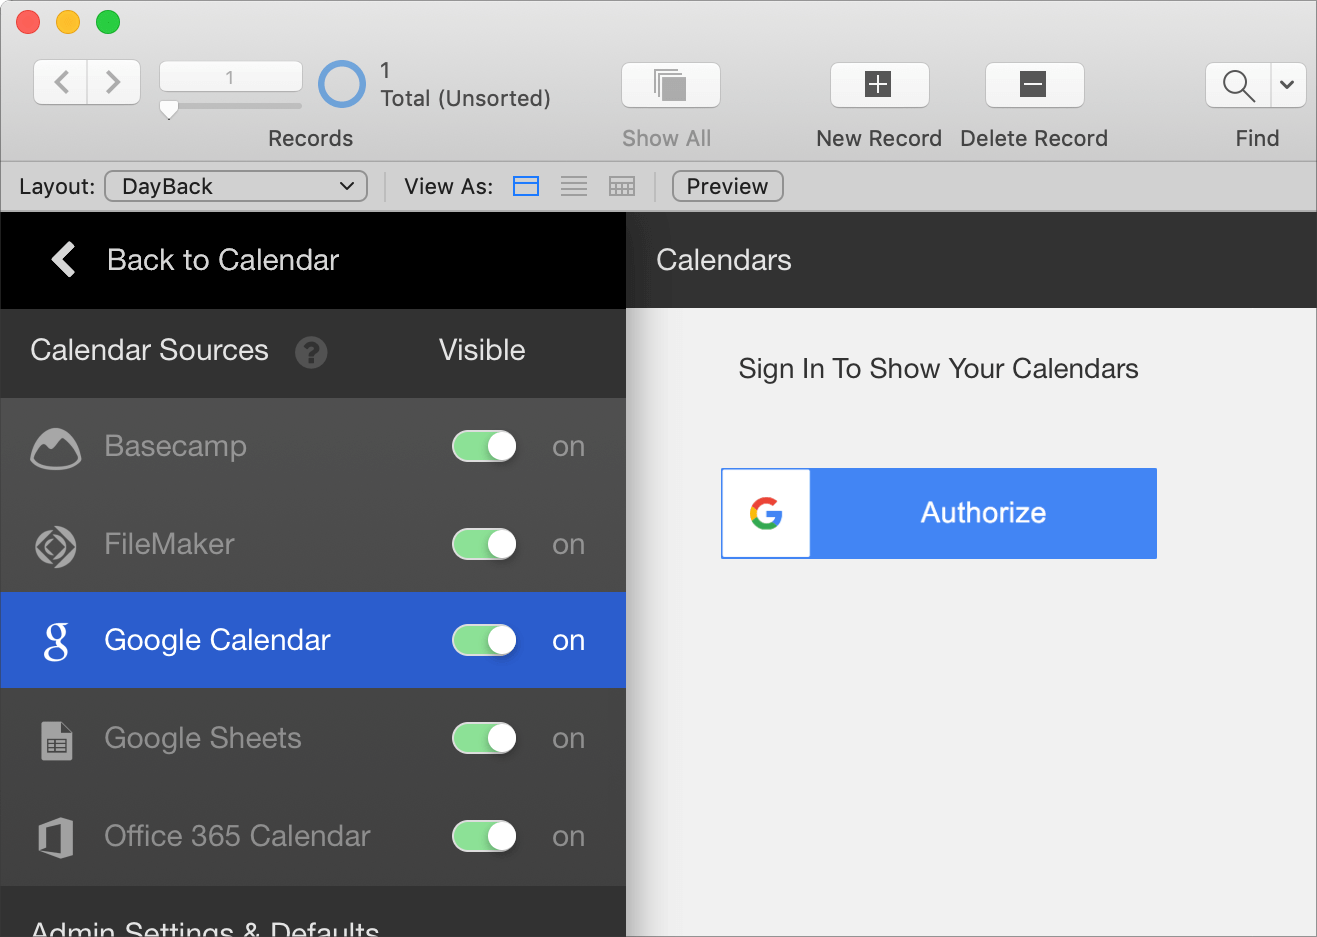 Google Calendar for FileMaker 19